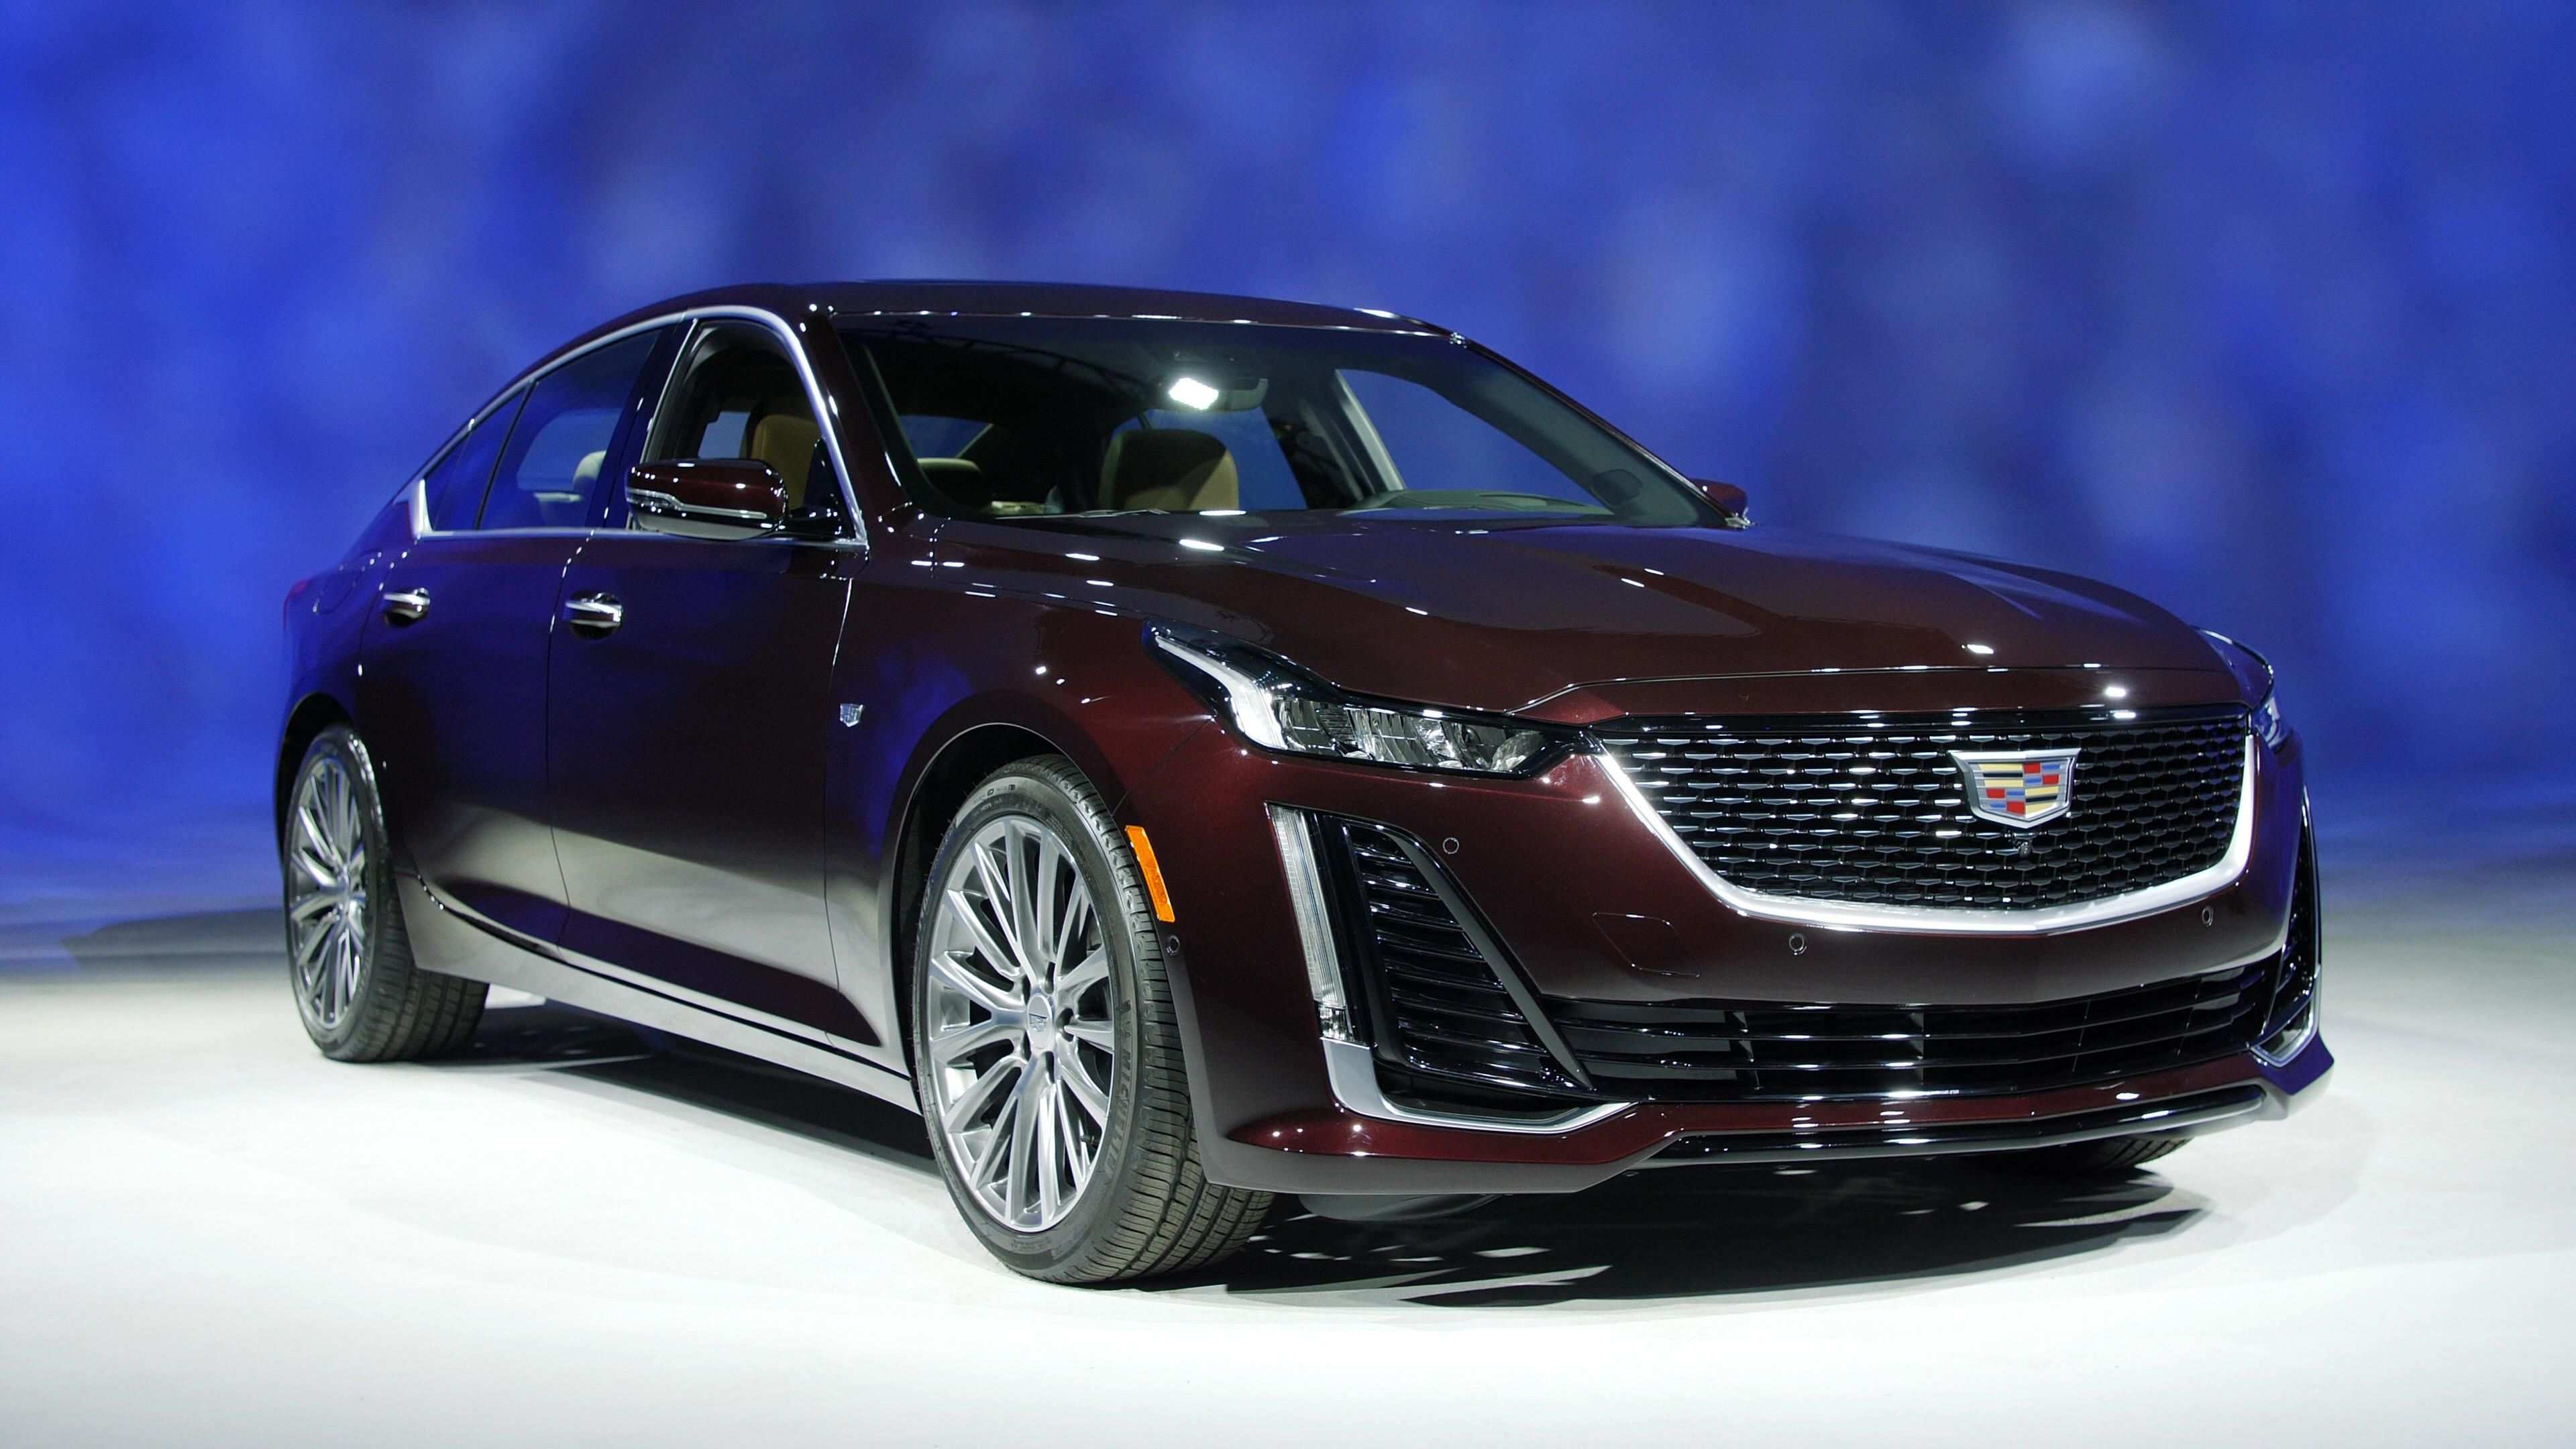 67 All New Cadillac Ct5 2020 Images with Cadillac Ct5 2020